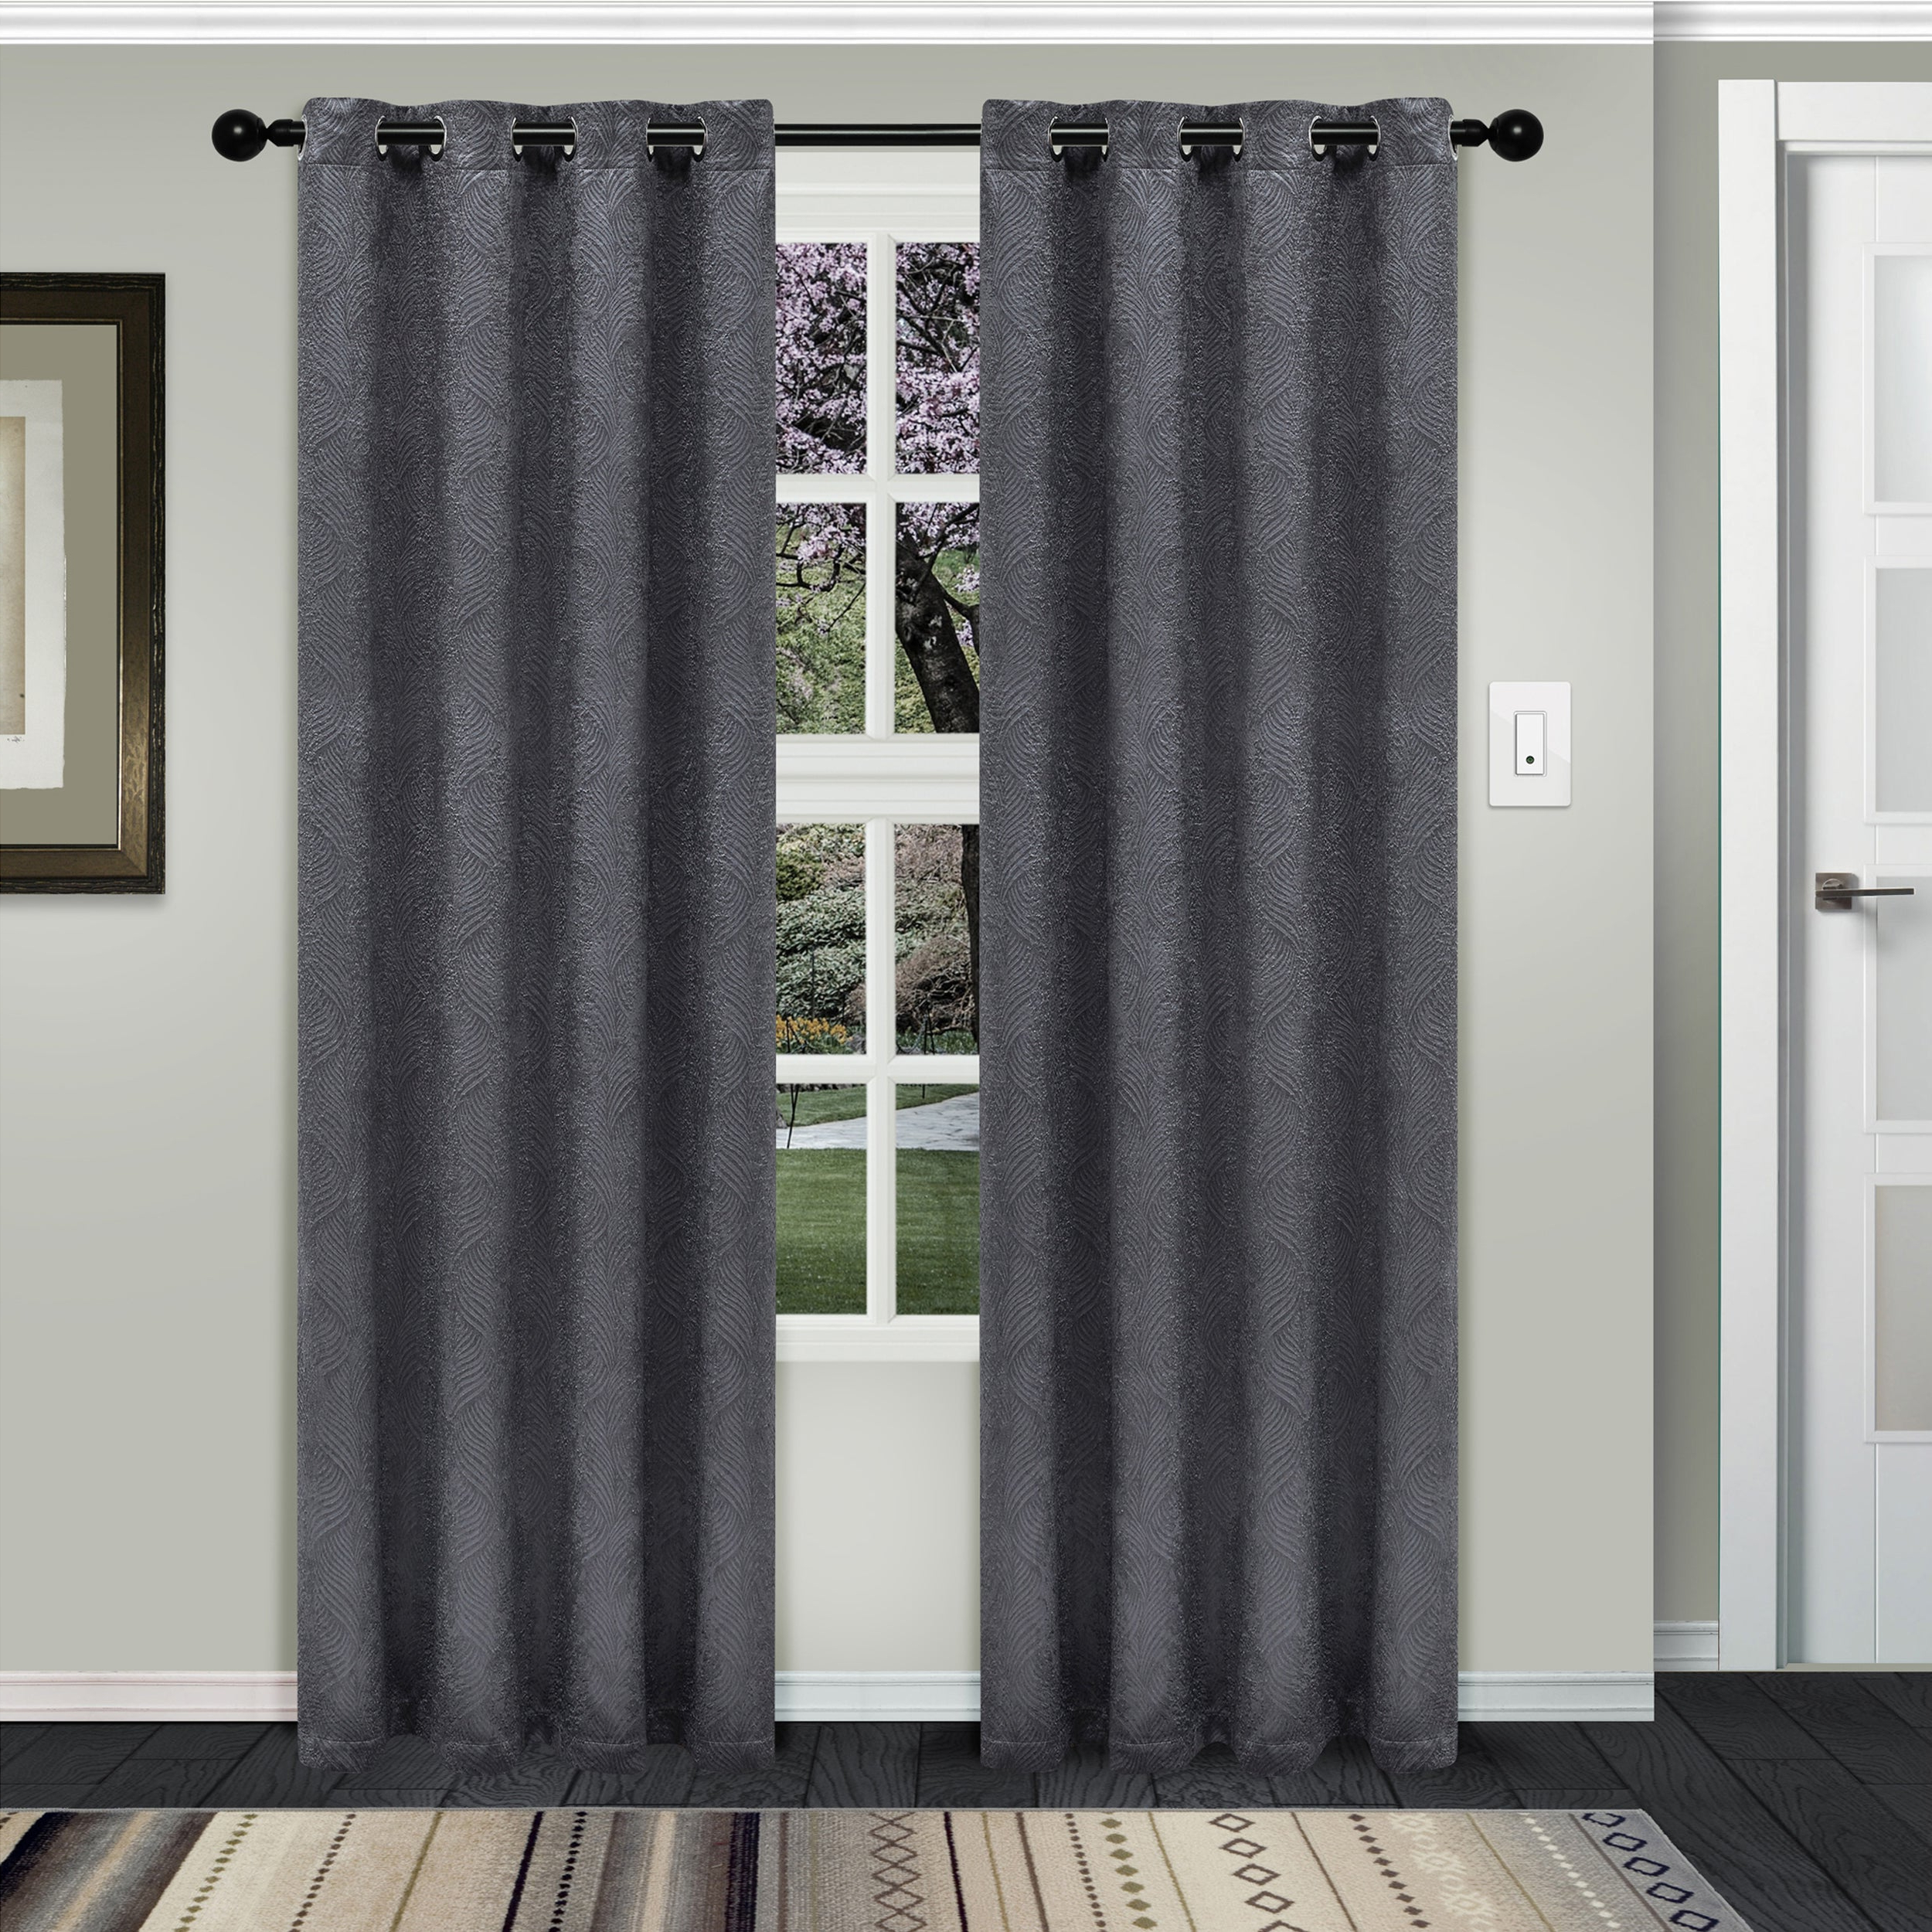 Superior Waverly Insulated Thermal Blackout Grommet Curtain Panel Pair Within Well Known Gracewood Hollow Tucakovic Energy Efficient Fabric Blackout Curtains (View 4 of 20)